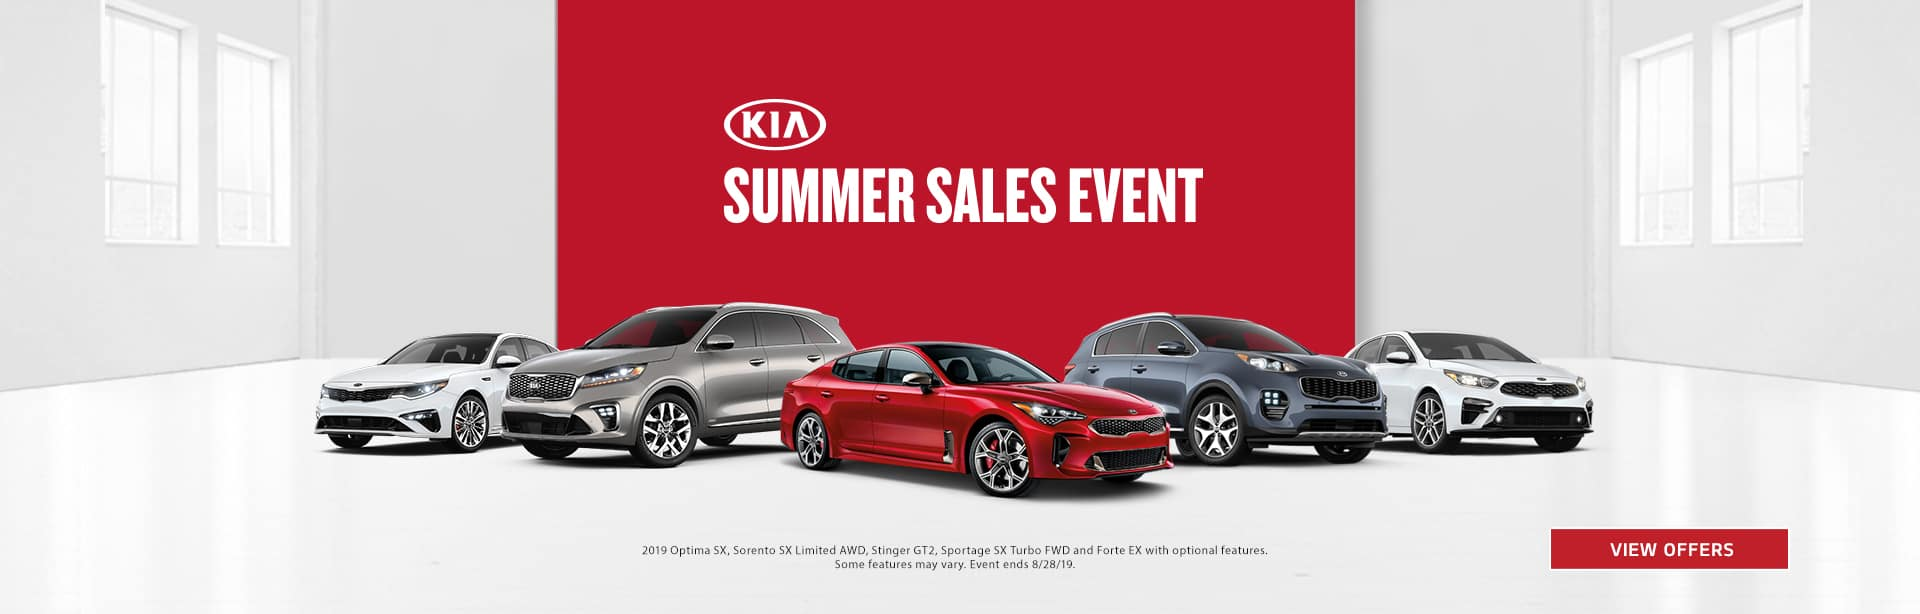 Summer Sales Event 201914